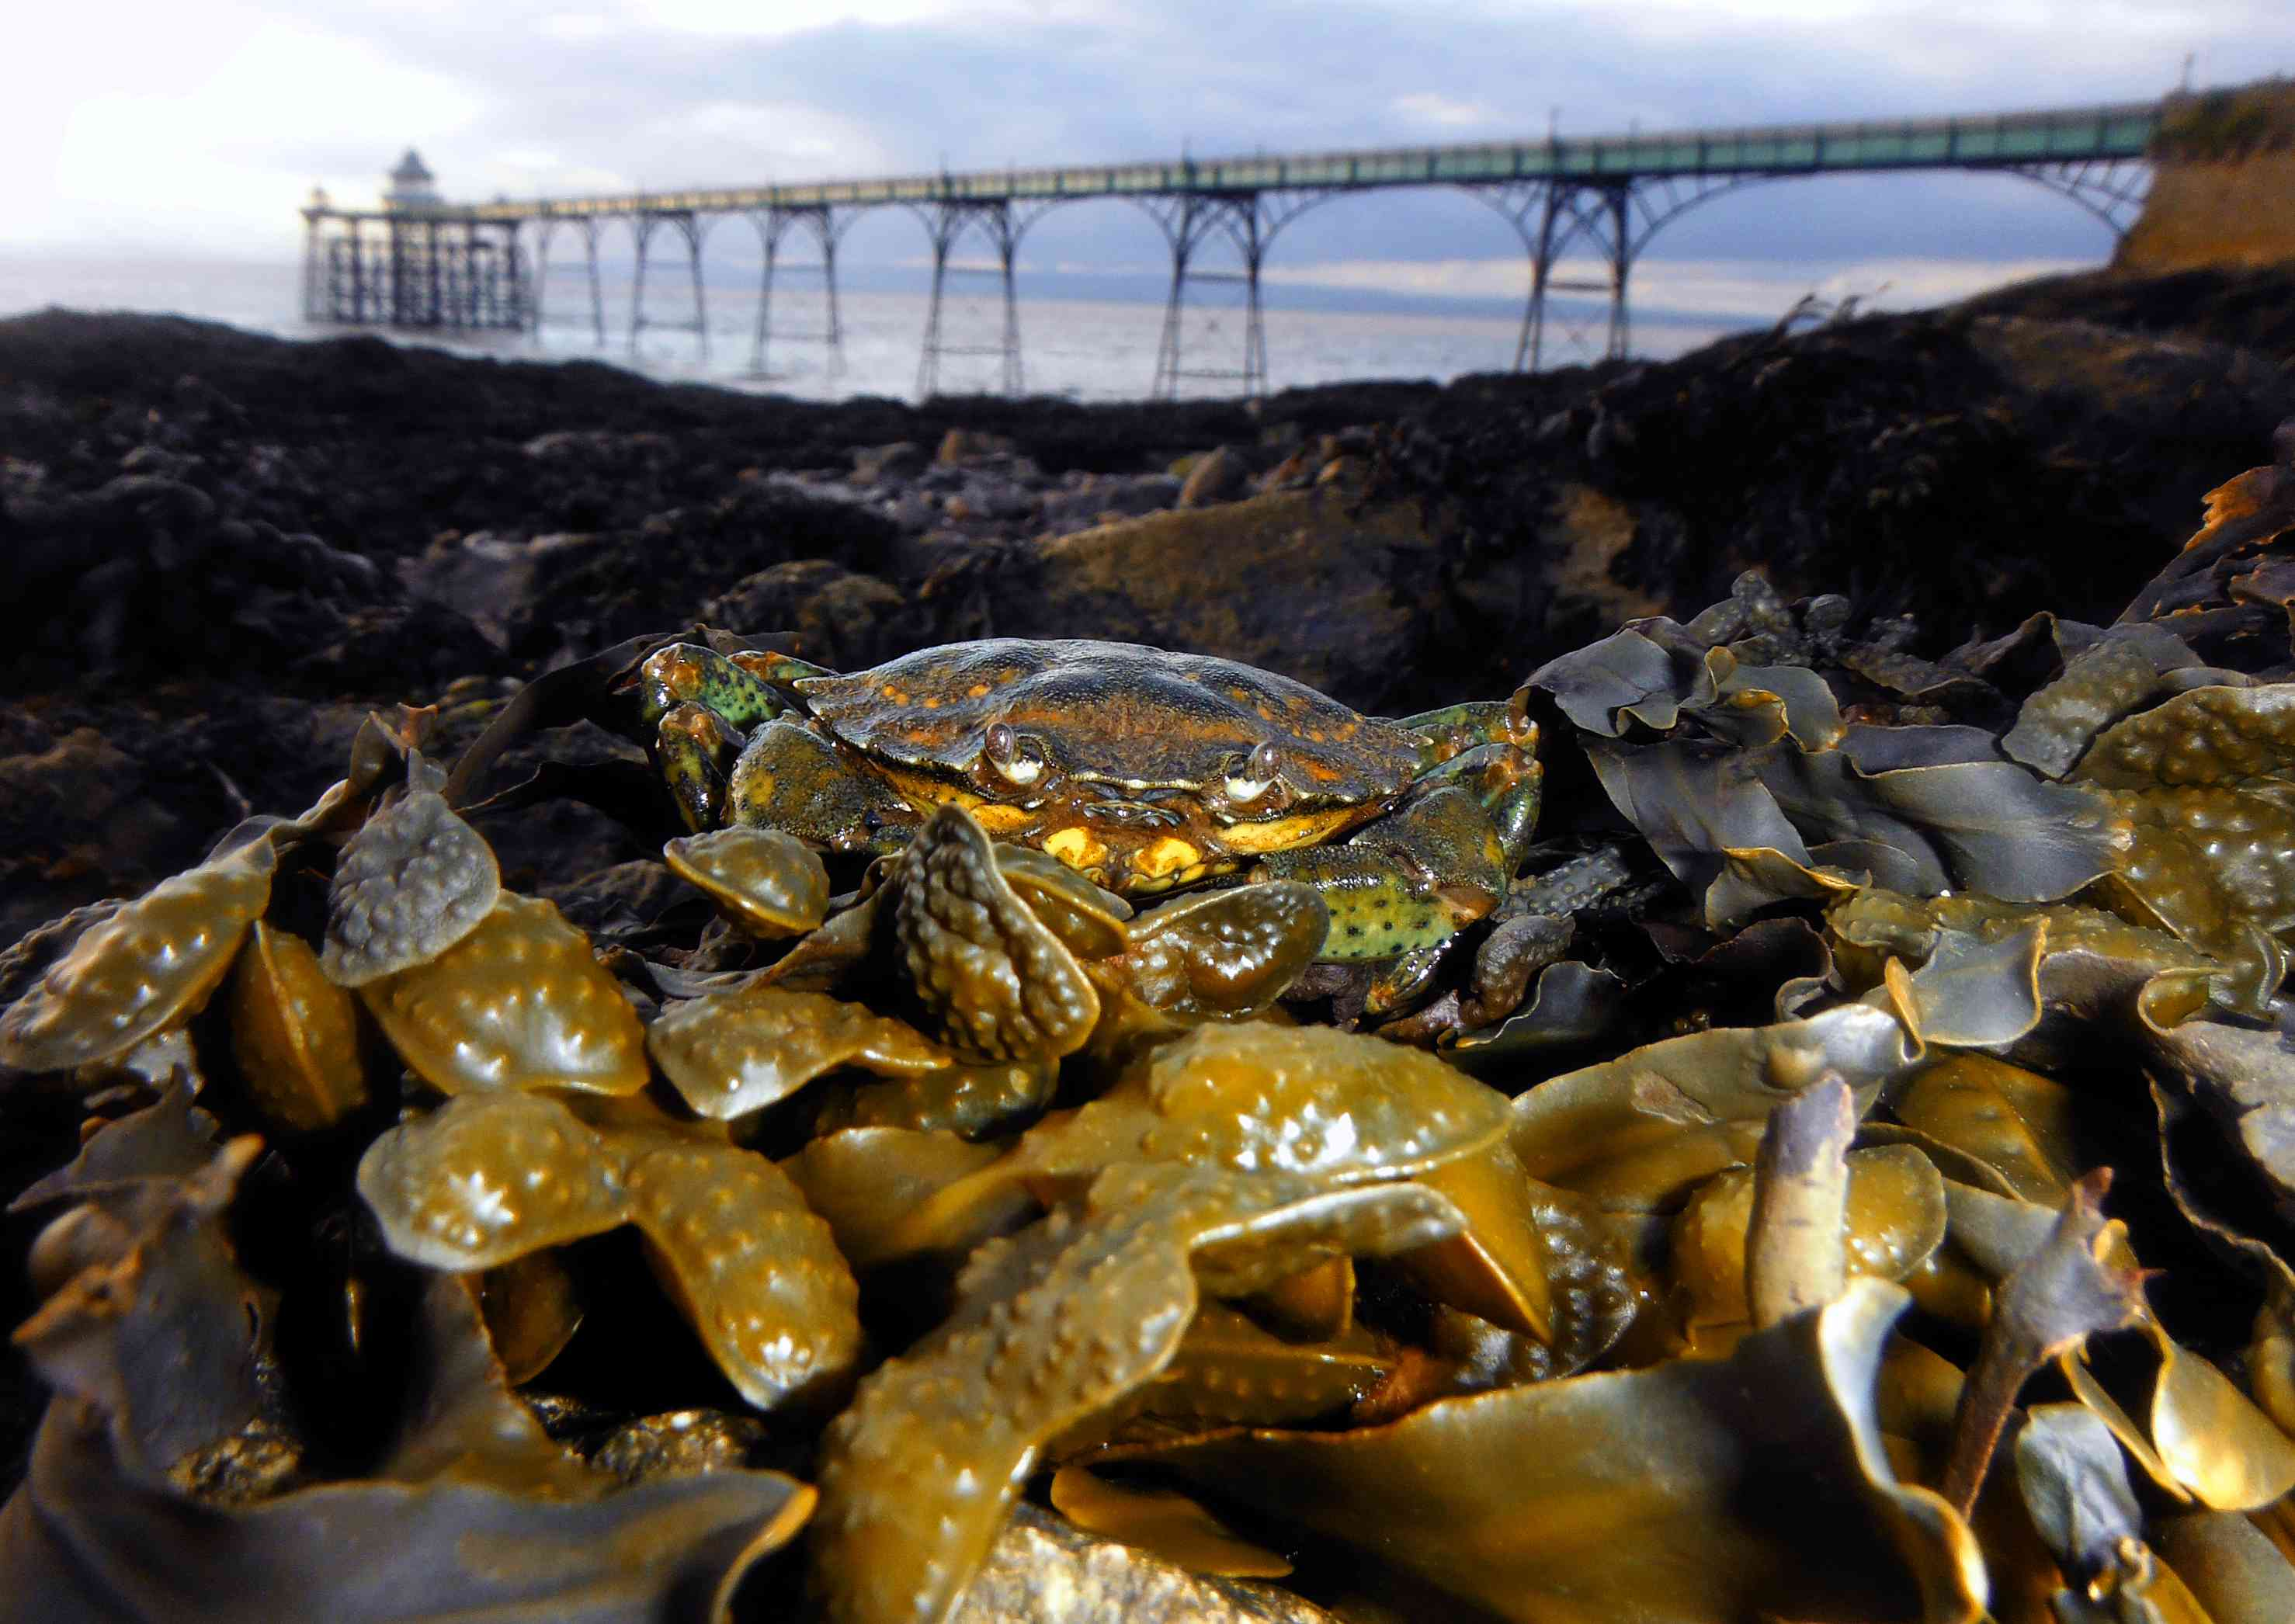 Common Shore crab resting on Seaweed in Clevedon